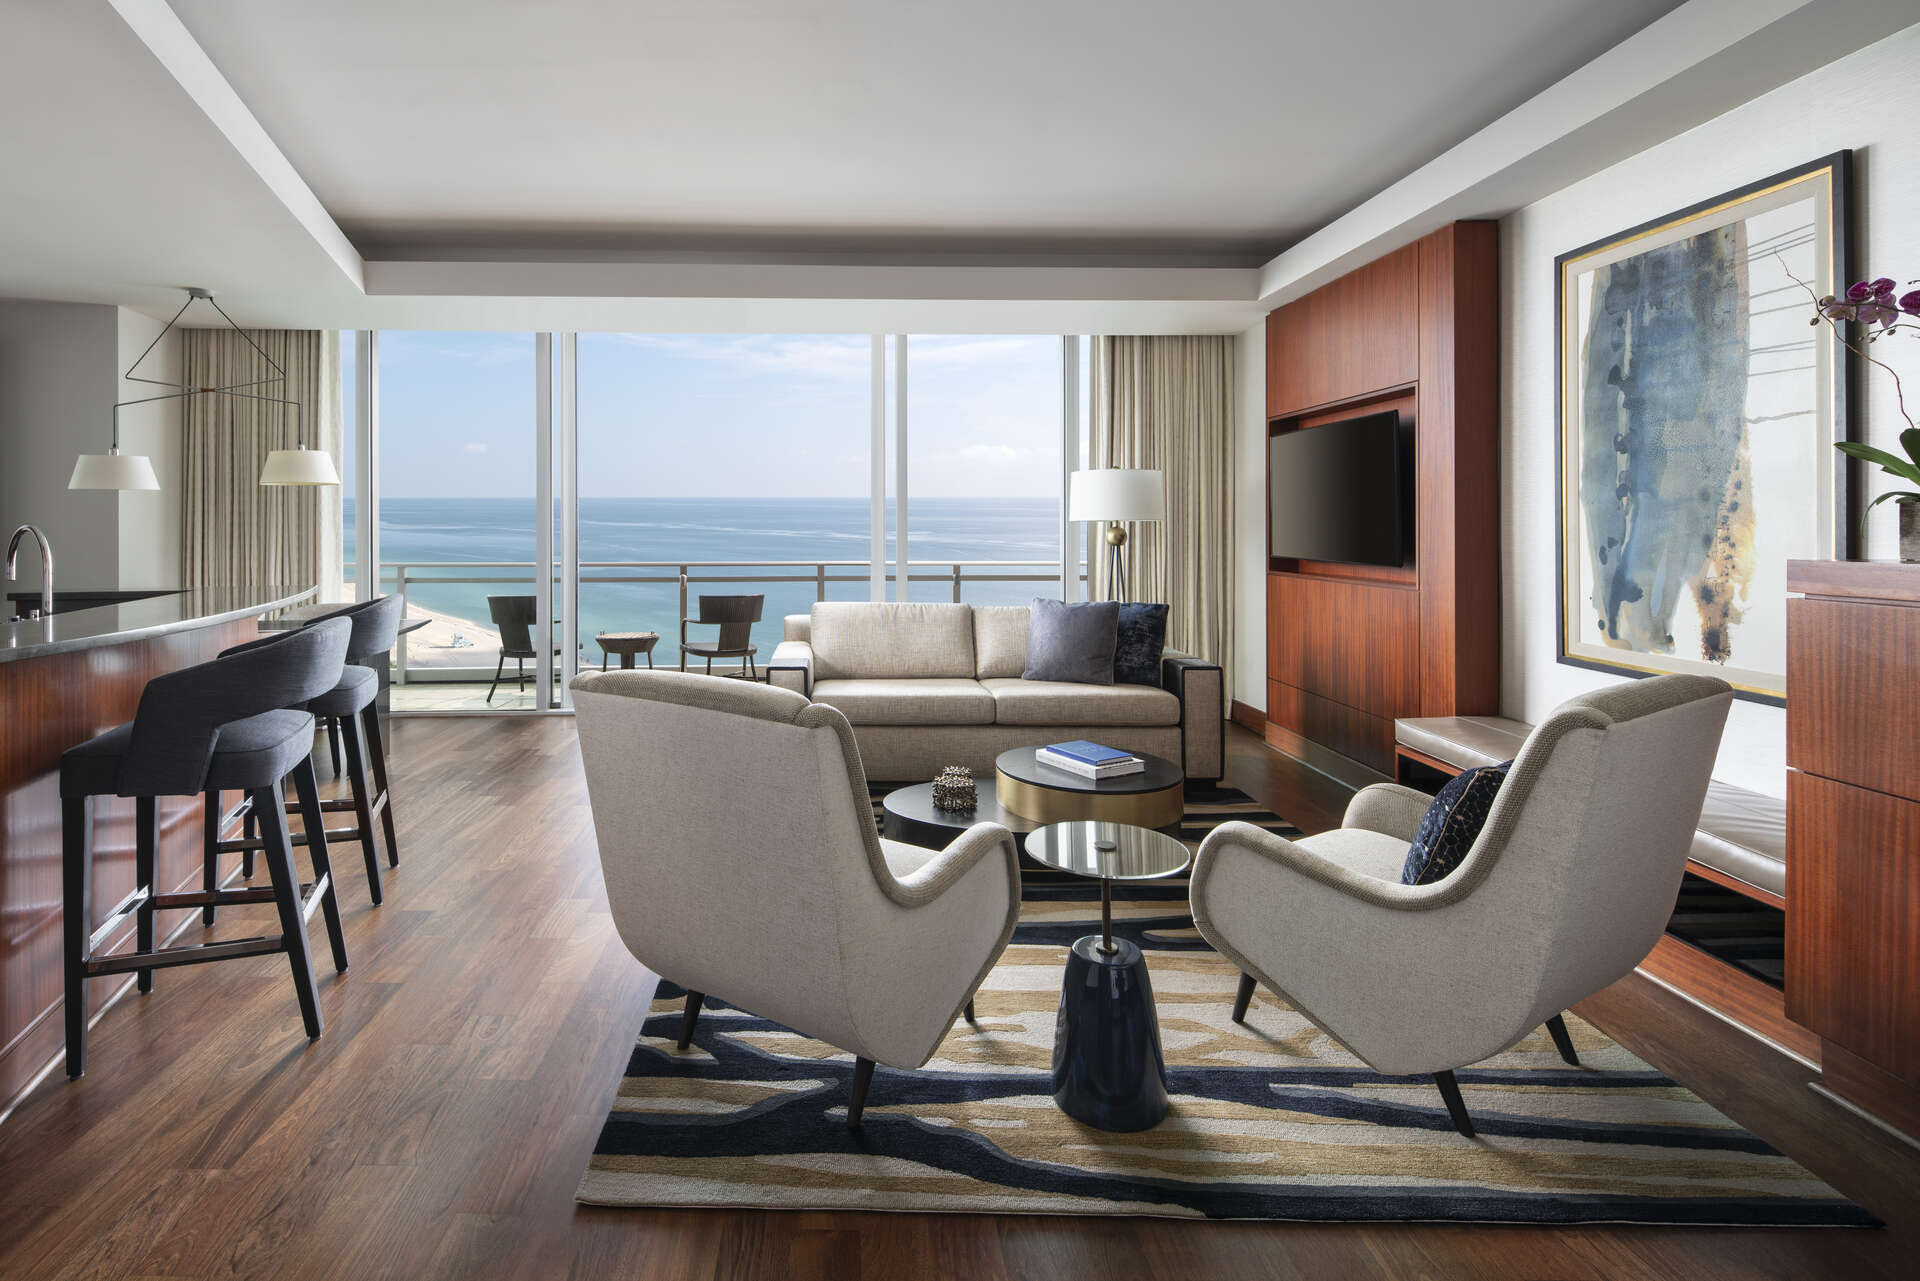 Luxury vacation rentals usa - Florida - Miami beach - Ritz carlton bal harbour - Bal Harbour Suite - Image 1/14